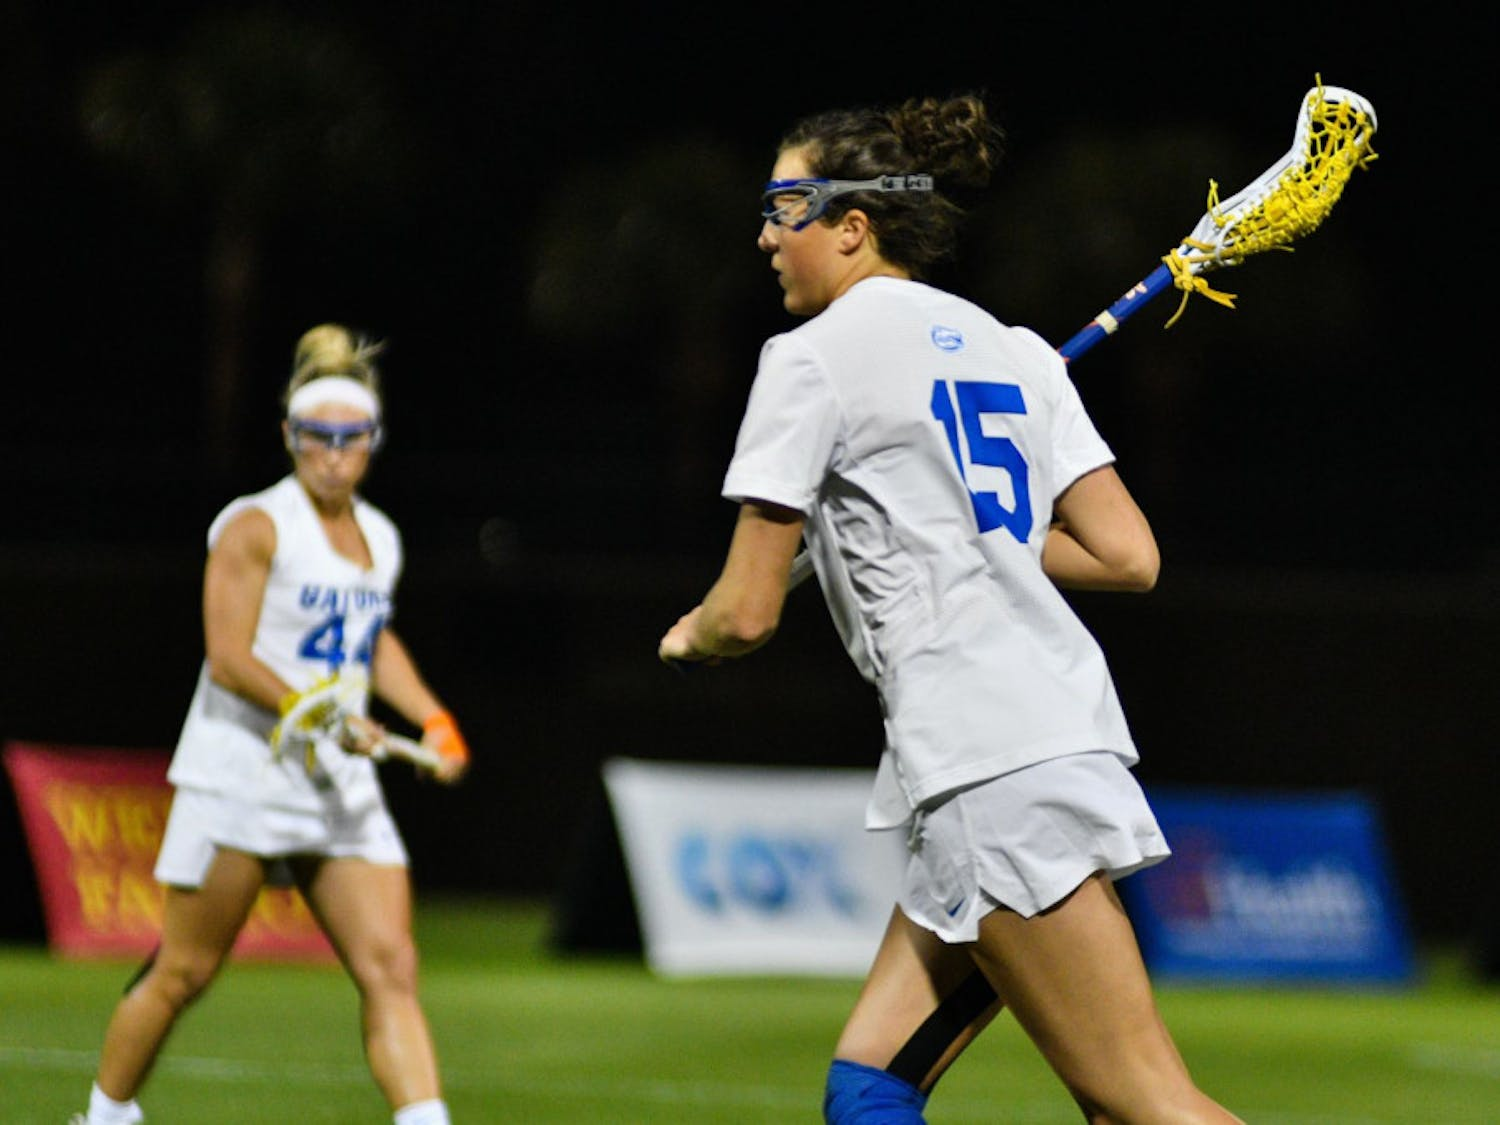 UF attacker Grace Haus scored four goals in Florida's 15-8 win over Temple on Saturday.